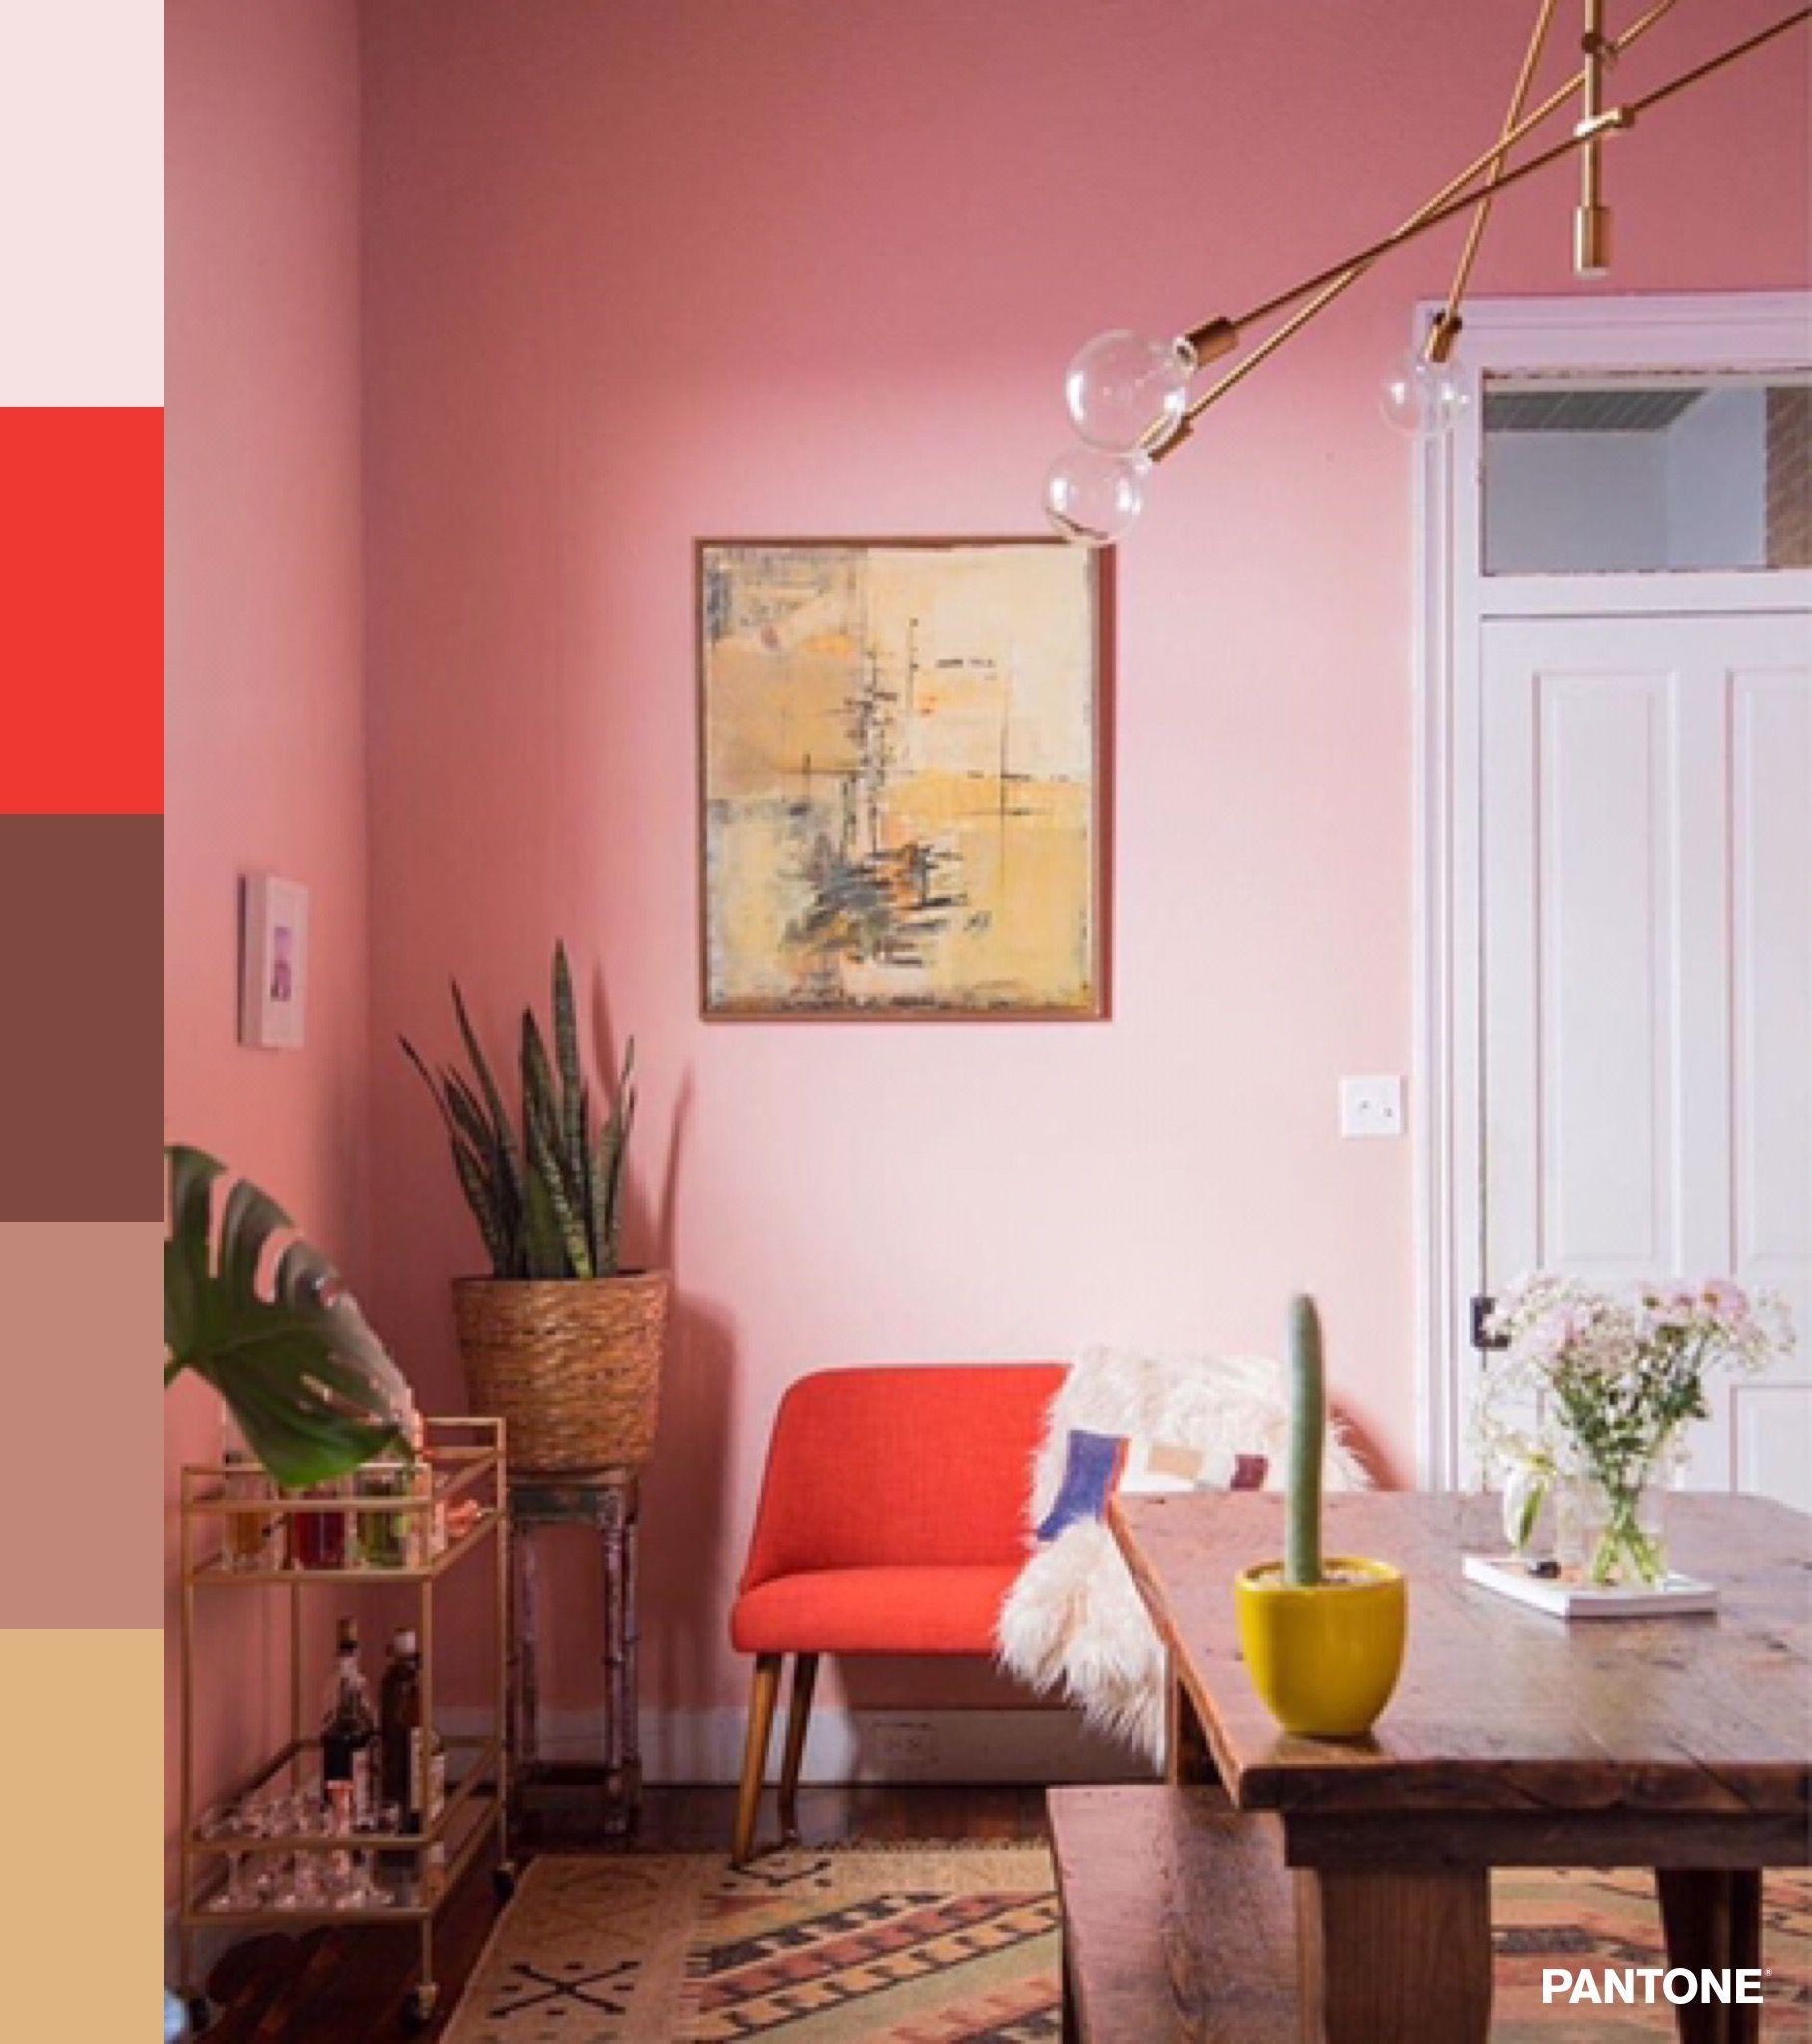 Pin by Meena Kumar on color palettes | Pinterest | Tiny furniture ...